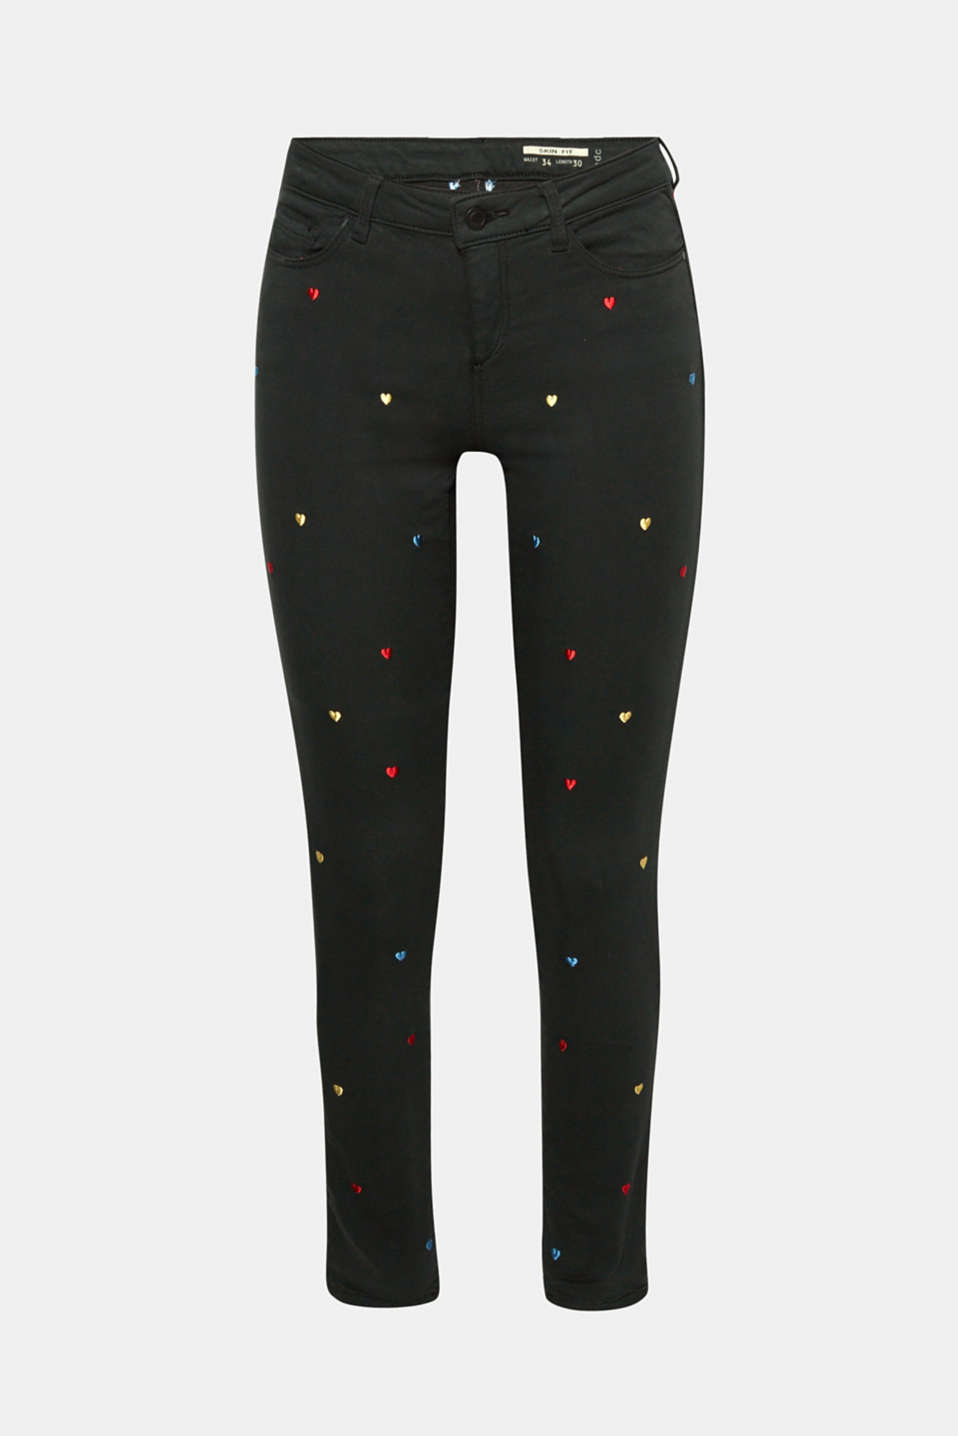 These skinny trousers in soft tracksuits fabric with five pockets fit the figure beautifully, are super comfy and feature colourful, embroidered hearts!